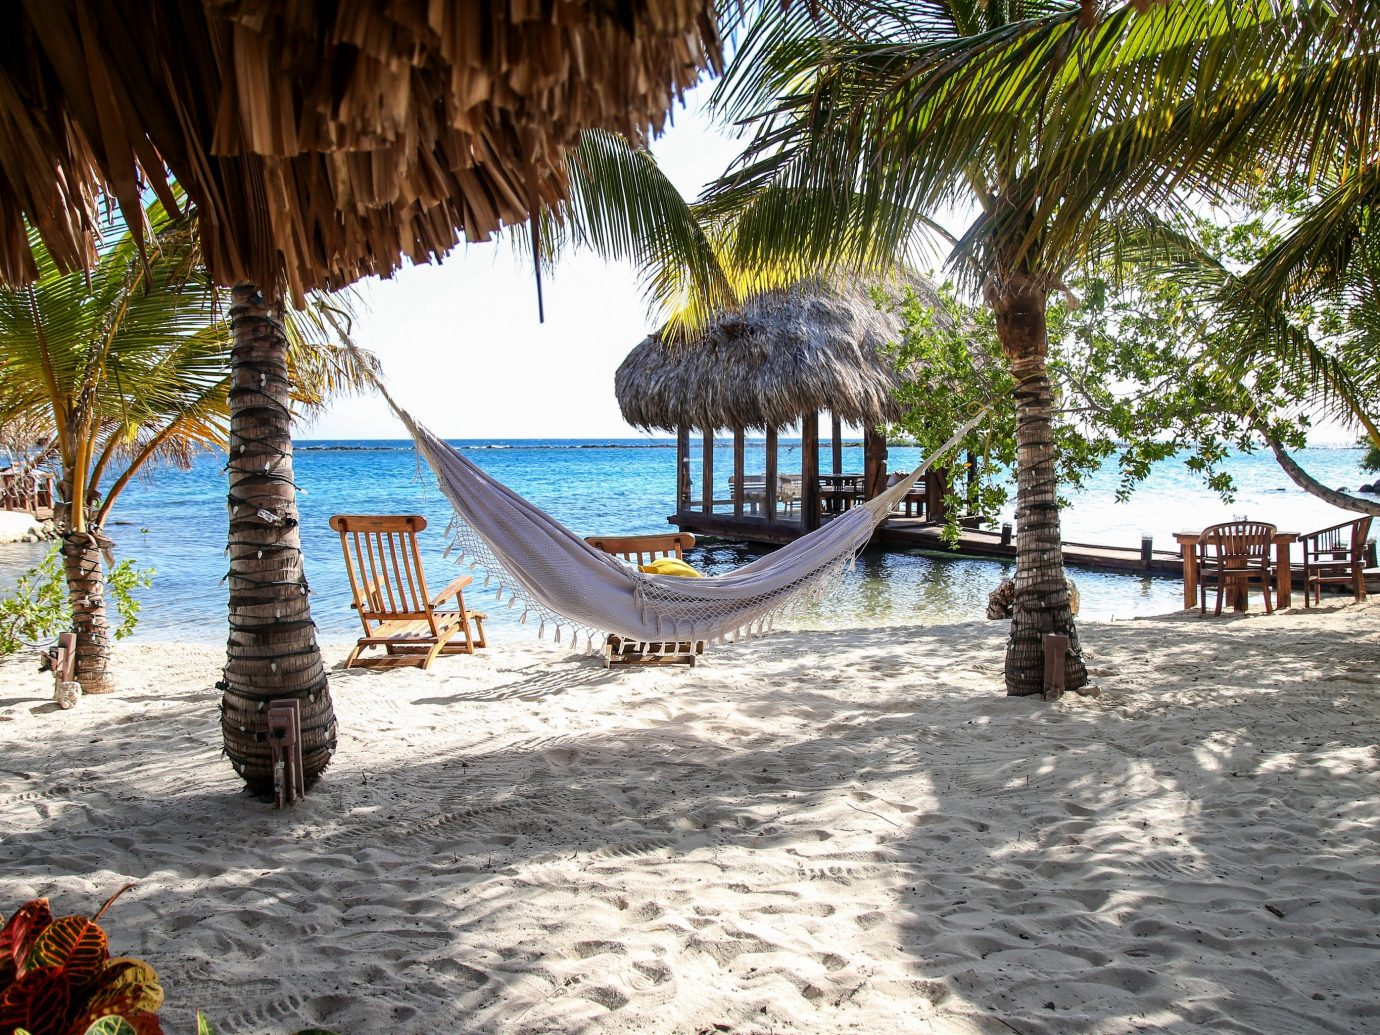 Hotels outdoor tree ground Beach plant Resort vacation arecales estate tropics sandy palm shade shore